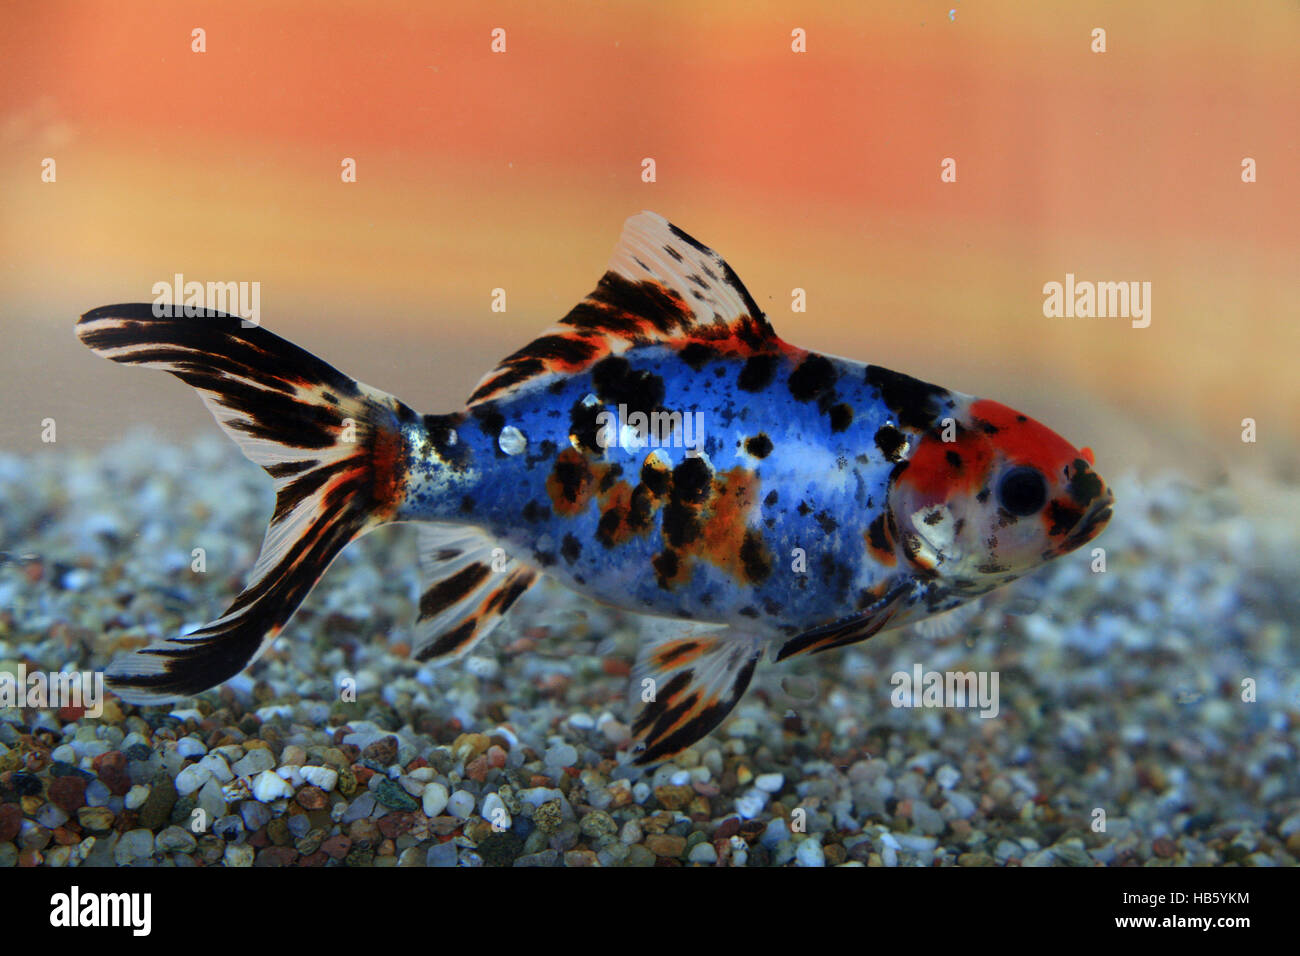 Shubunkin goldfisch stockfoto bild 127365272 alamy for Shubunkin teich